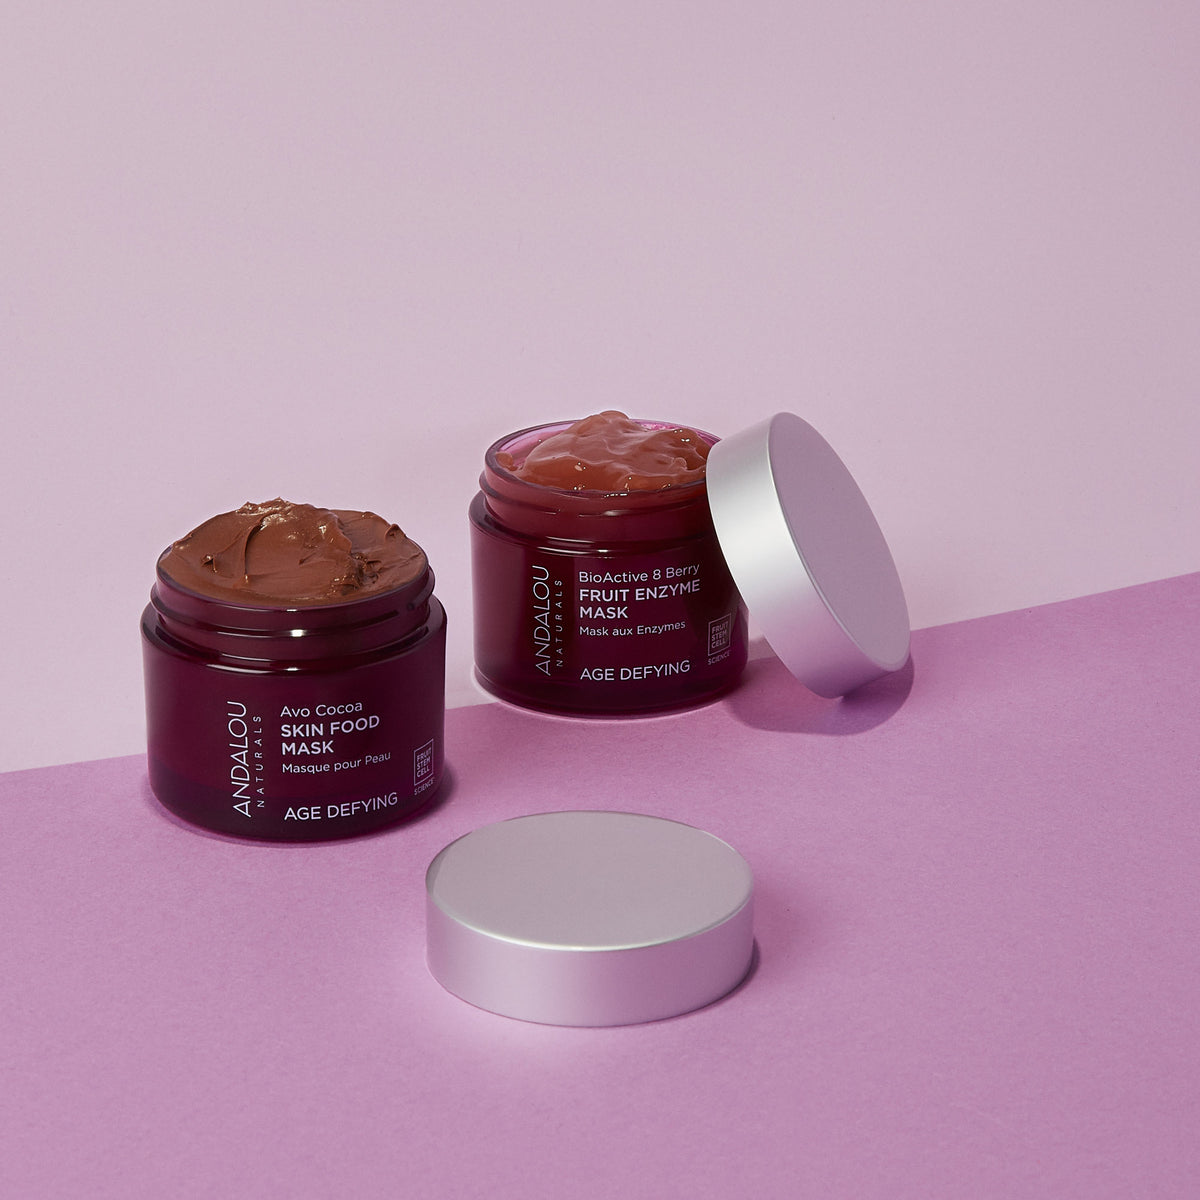 Age Defying Avo Cocoa Skin Food Mask